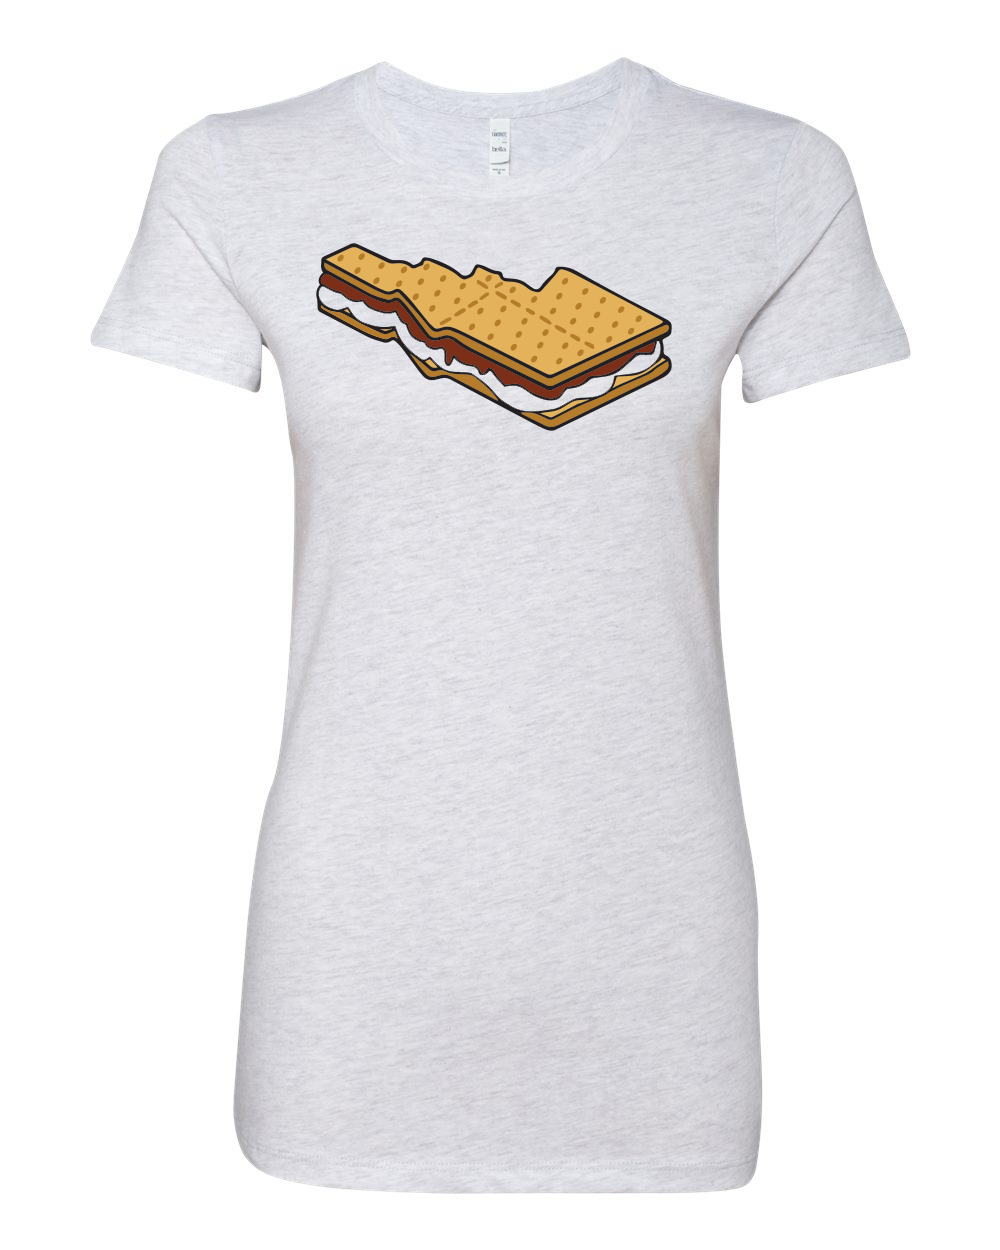 Womens | Tees | S'mores